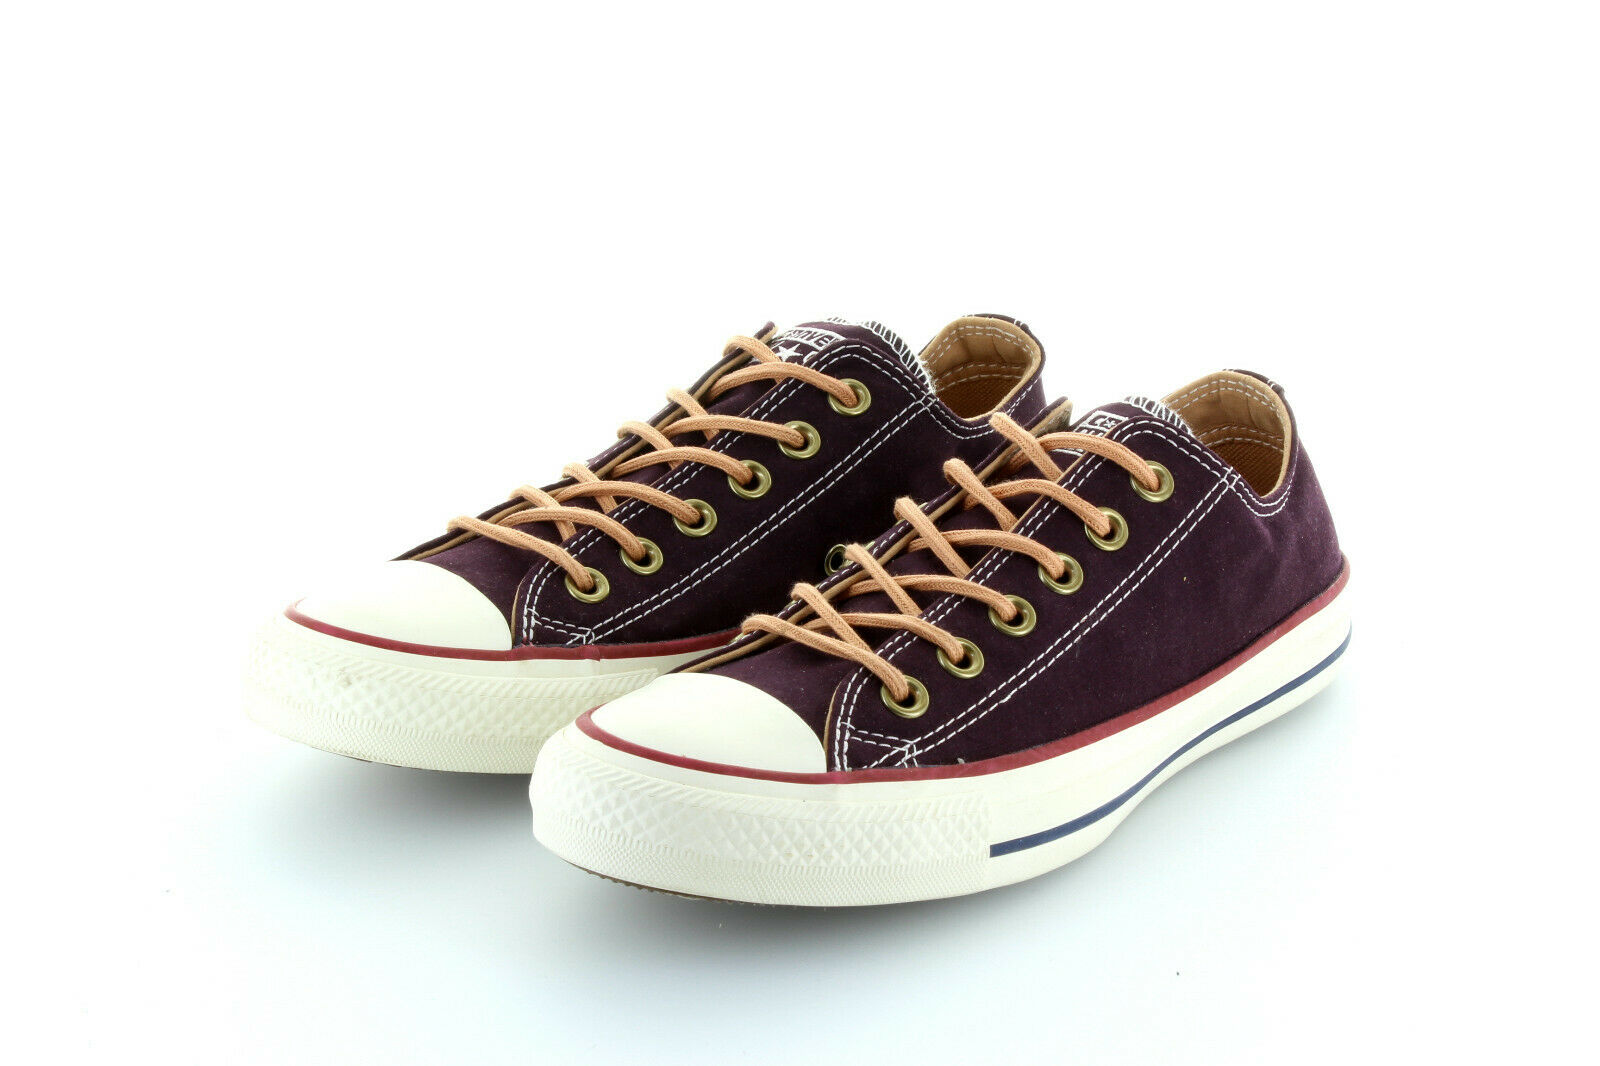 Converse All Star Chuck Taylor Ox Cherry Biscuit Canvas Gr. 37,5   38,5